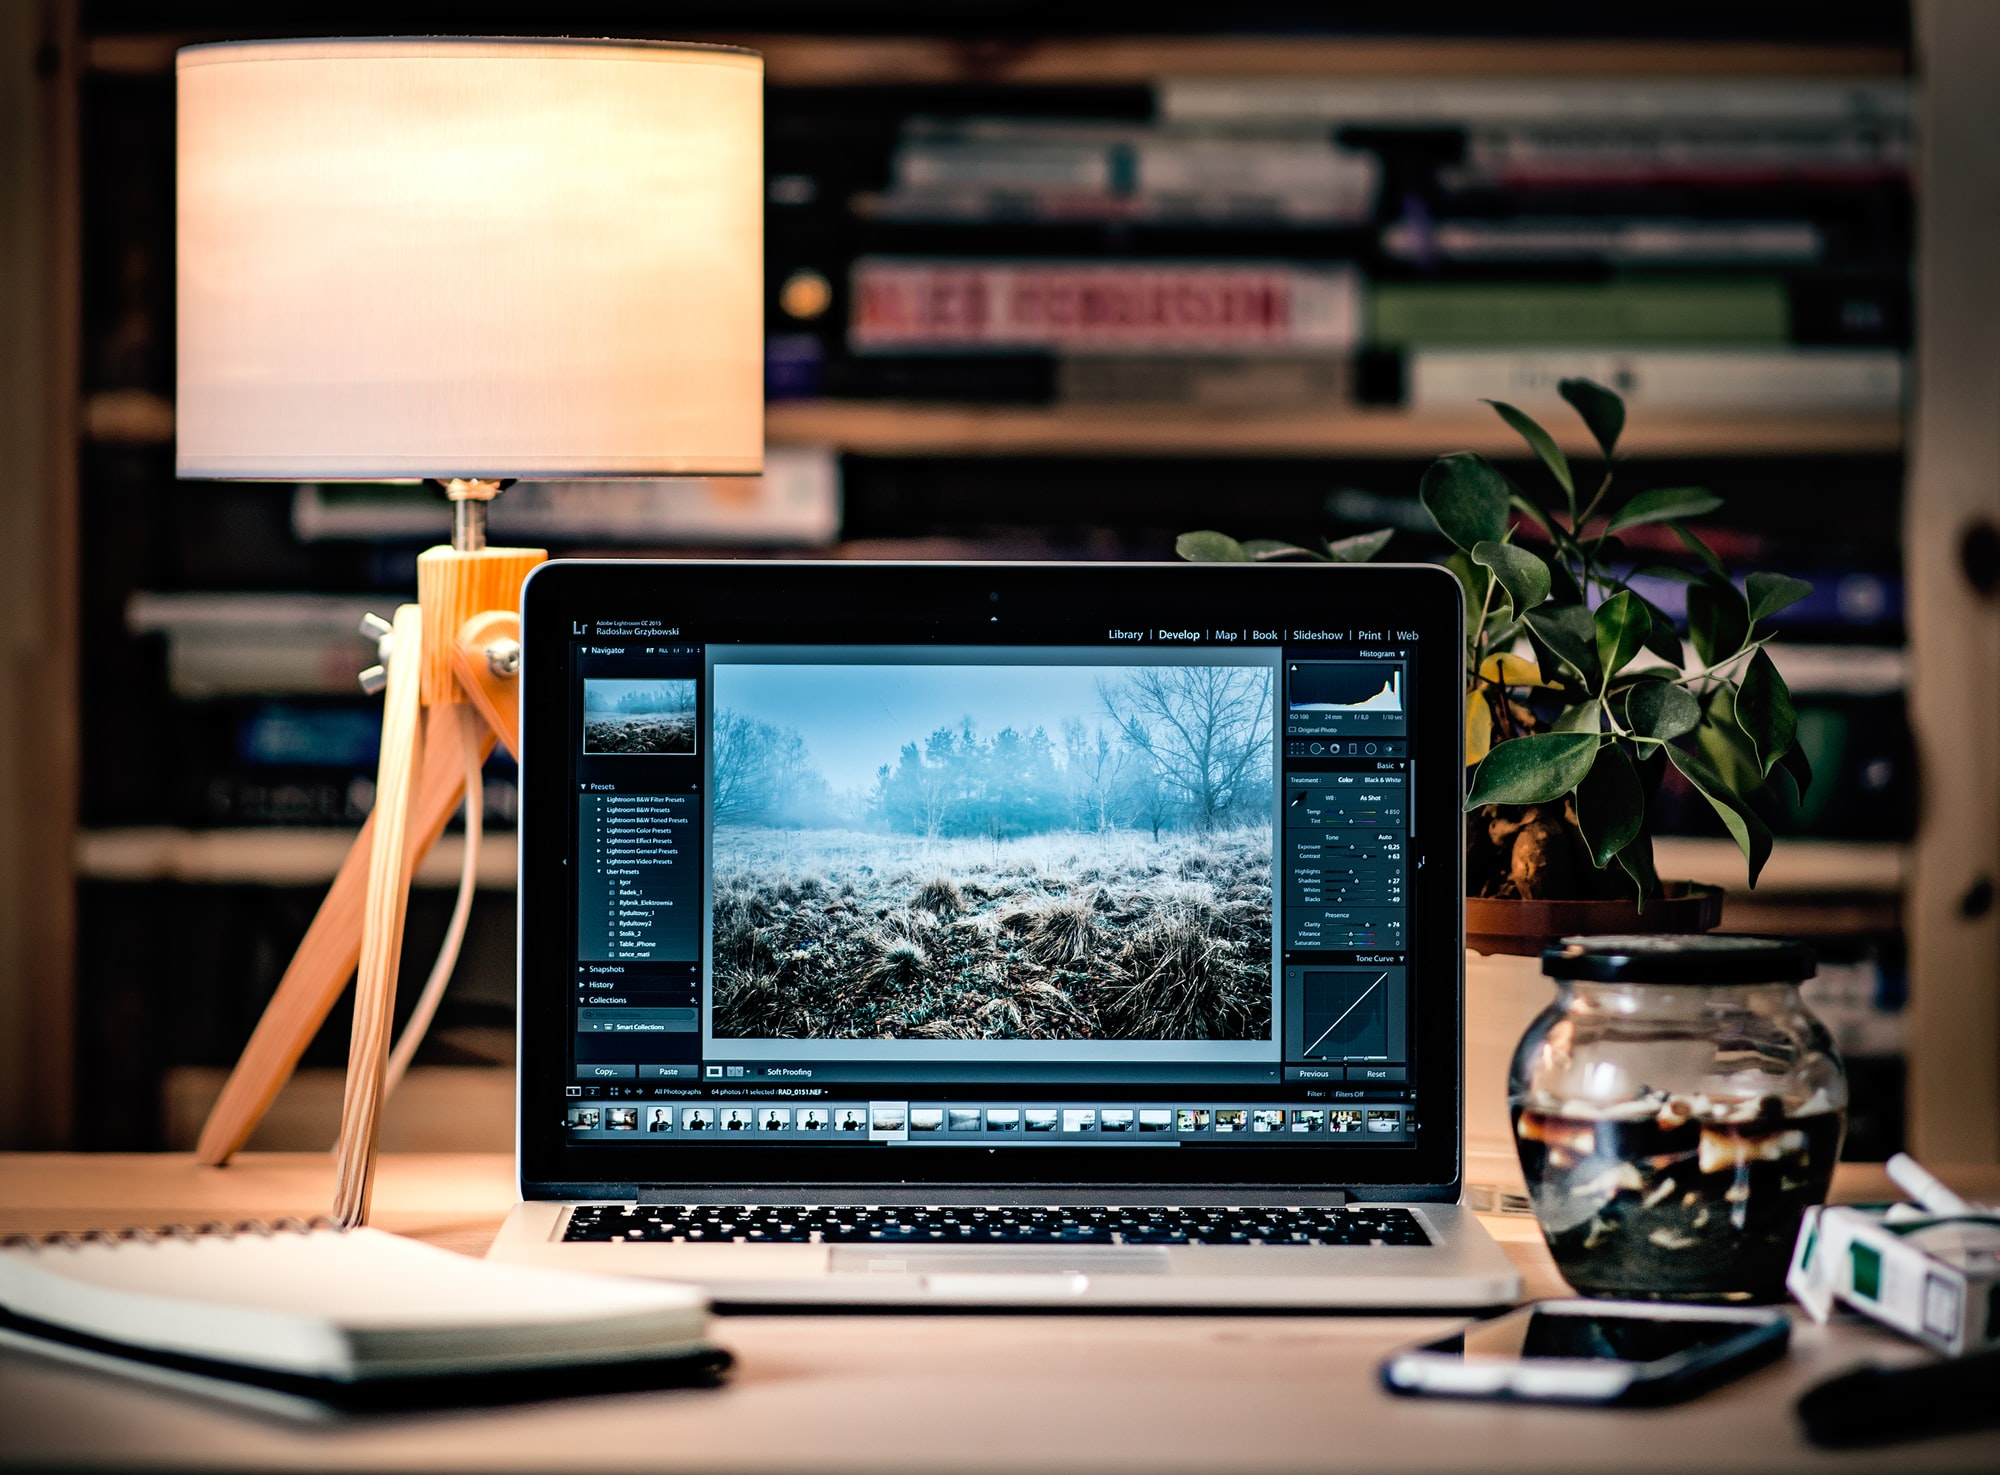 20 sites to find free stock images in 2021